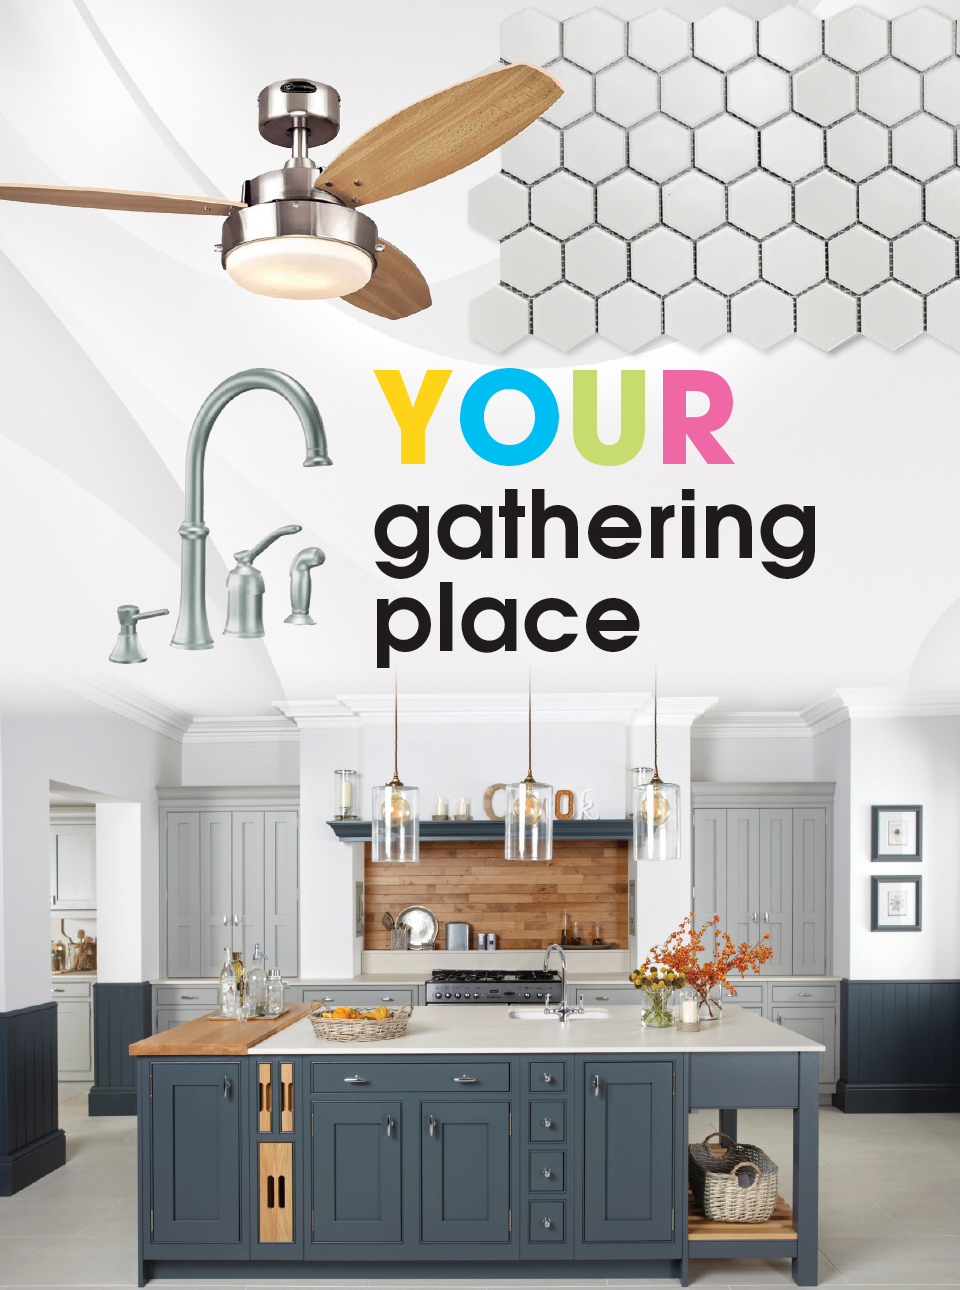 Your gathering place